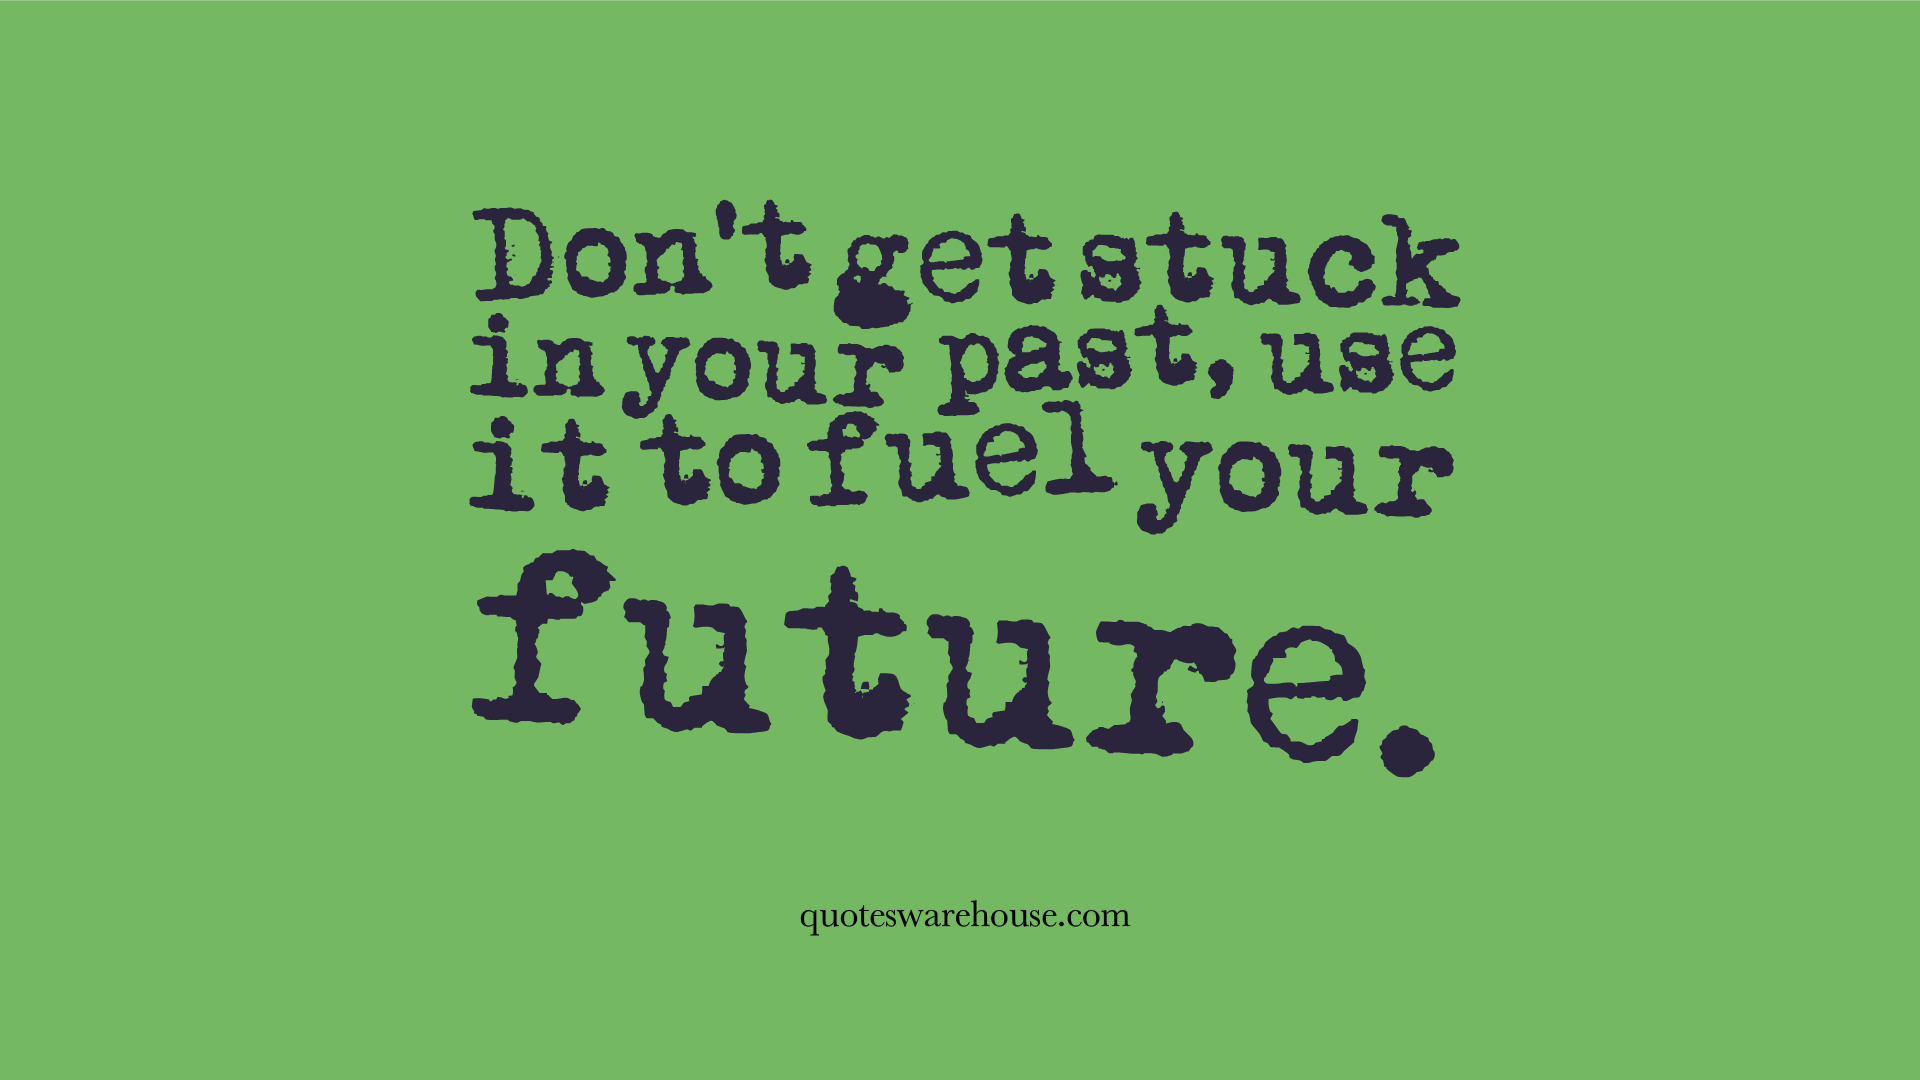 Stuck Quotes And Sayings. QuotesGram